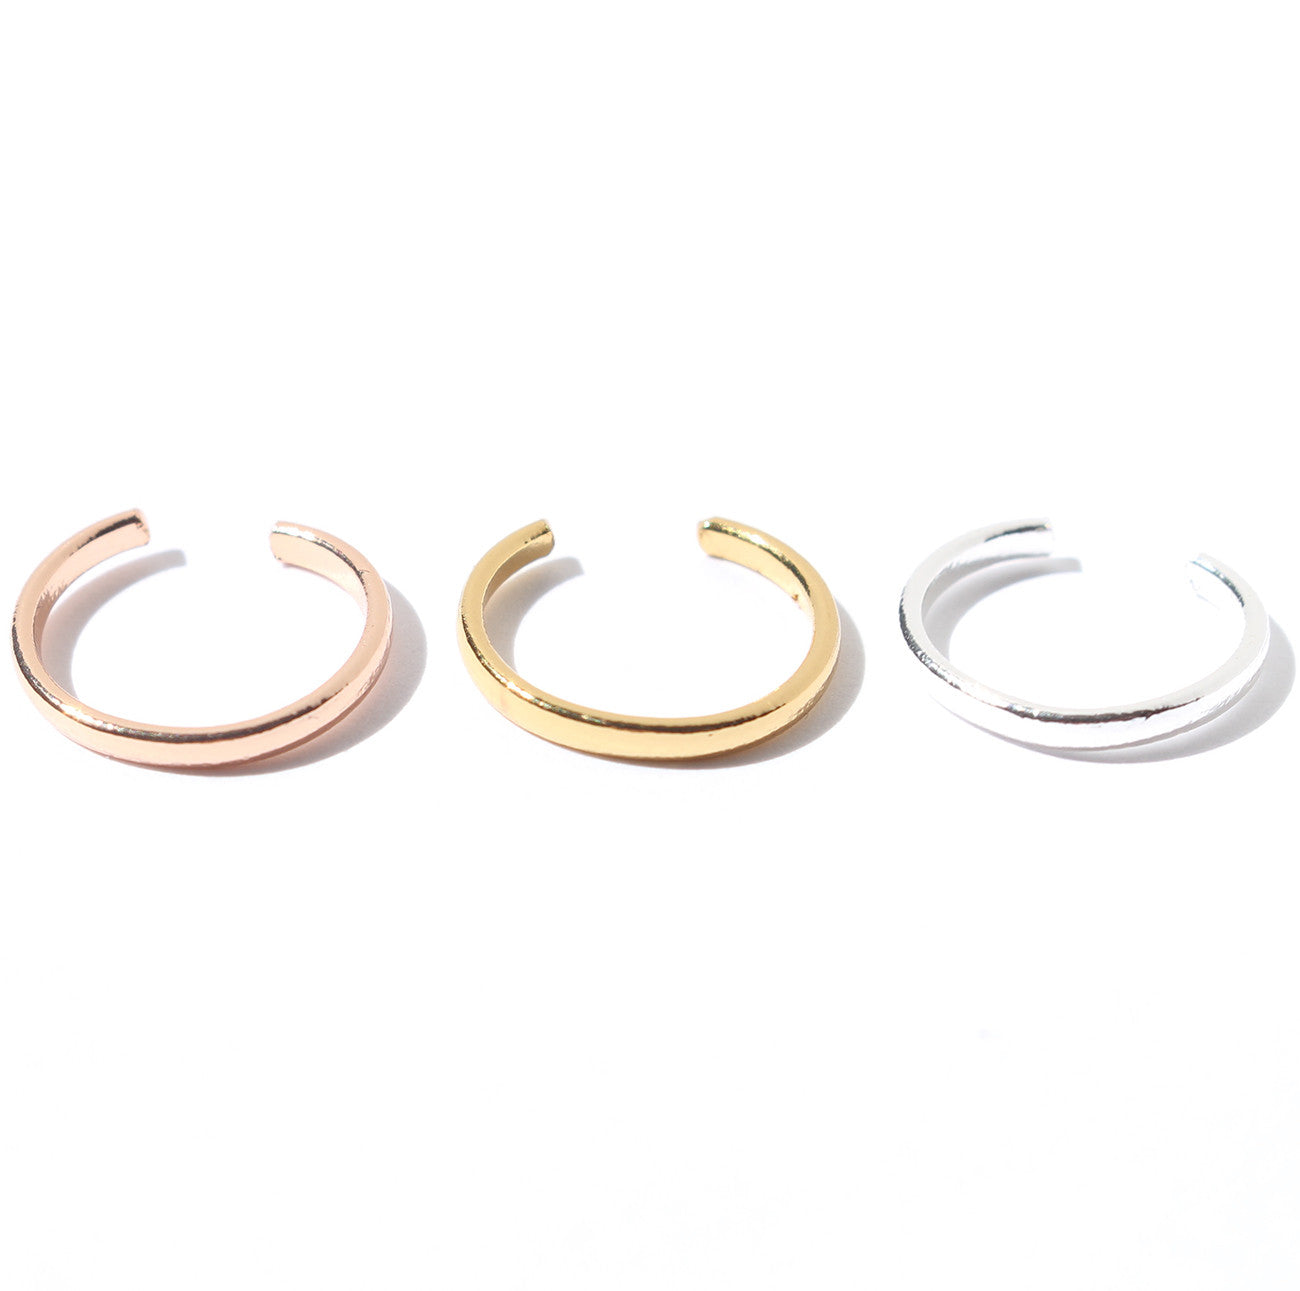 ceade56ee Jenny Bird Cleo Ear Cuff in Rose Gold, Gold and Silver